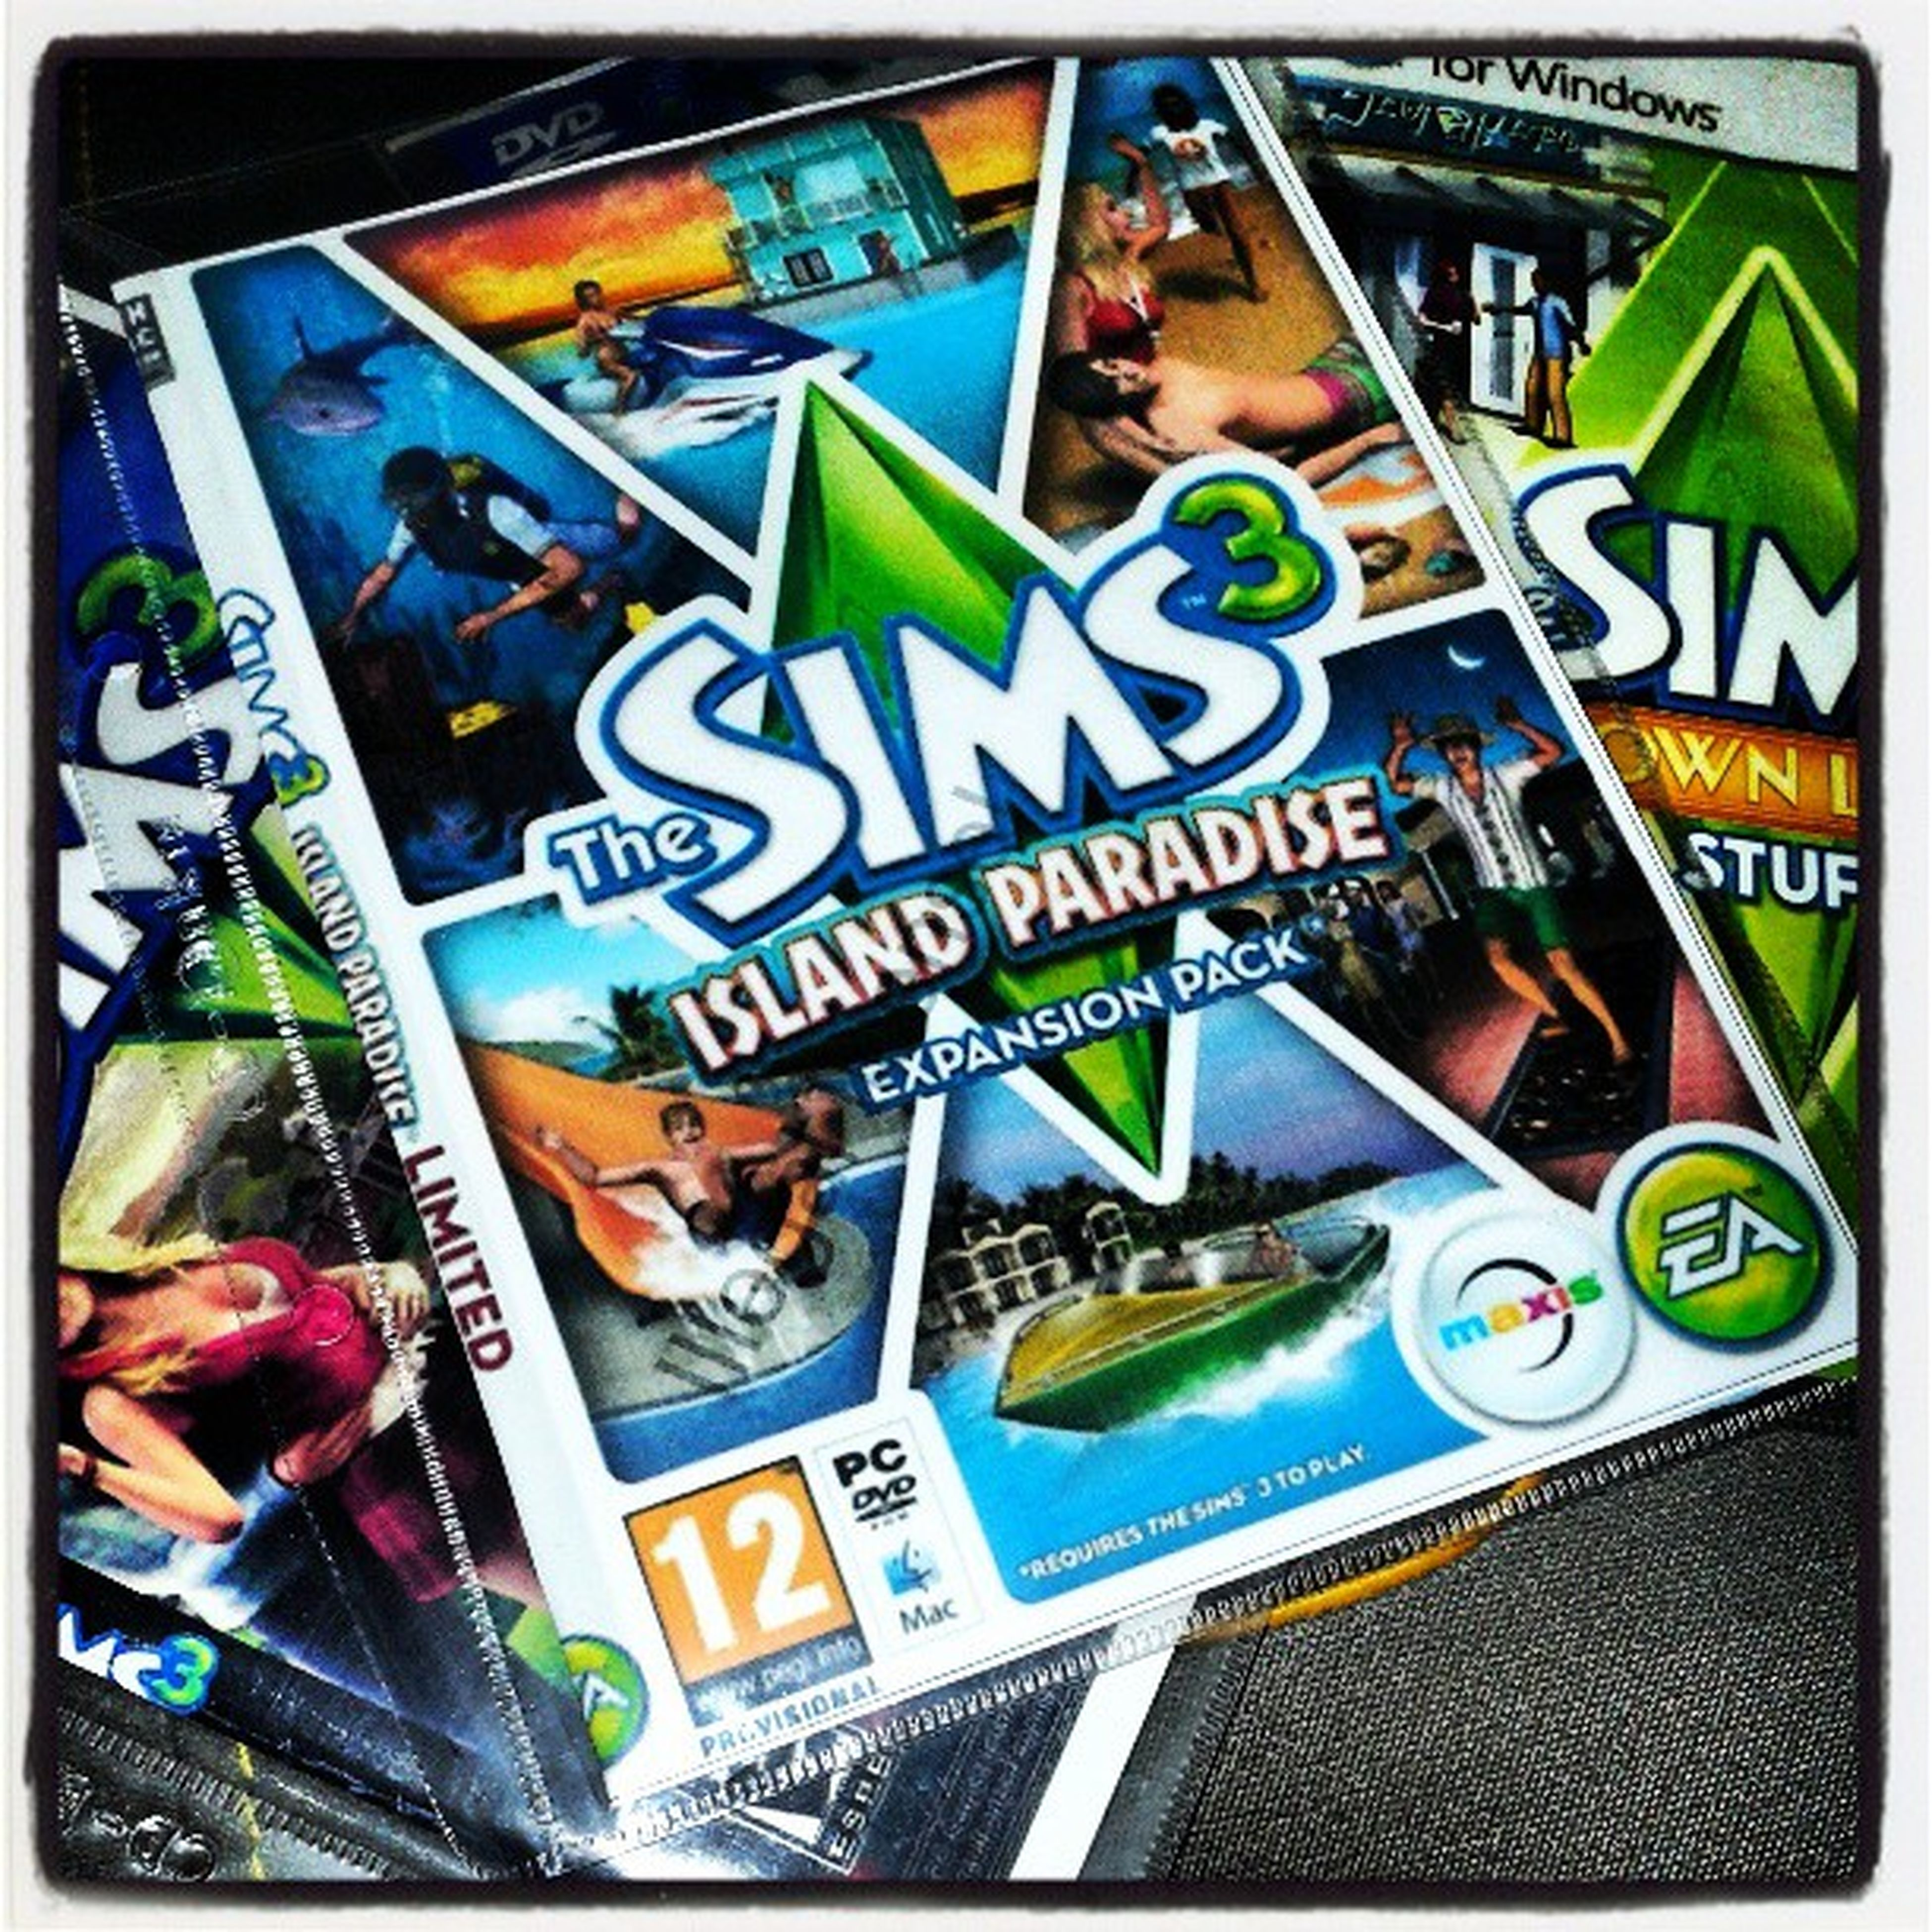 Installing this game for @i6322 .. Thesims3 Paradisoisland Gameaddict